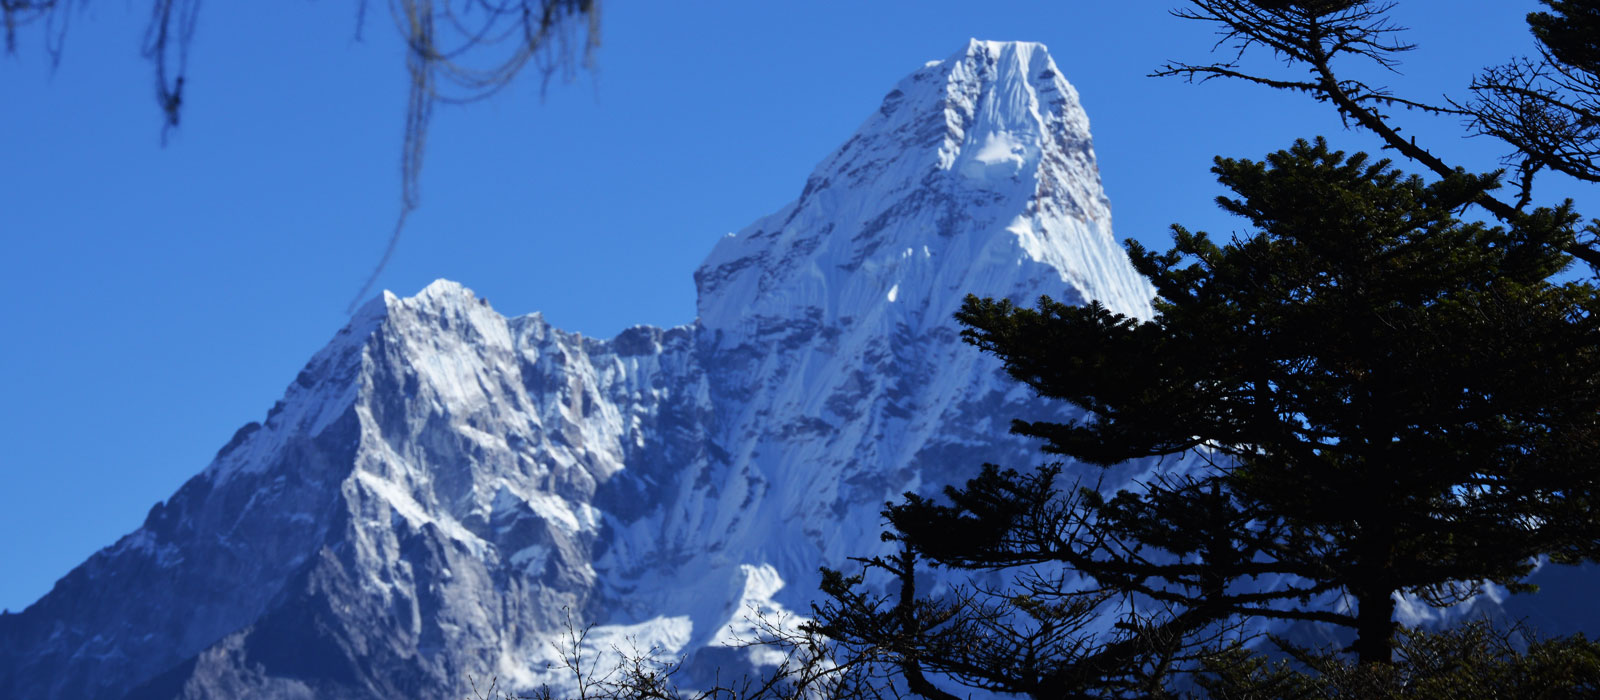 everest-region-nepal-trekking